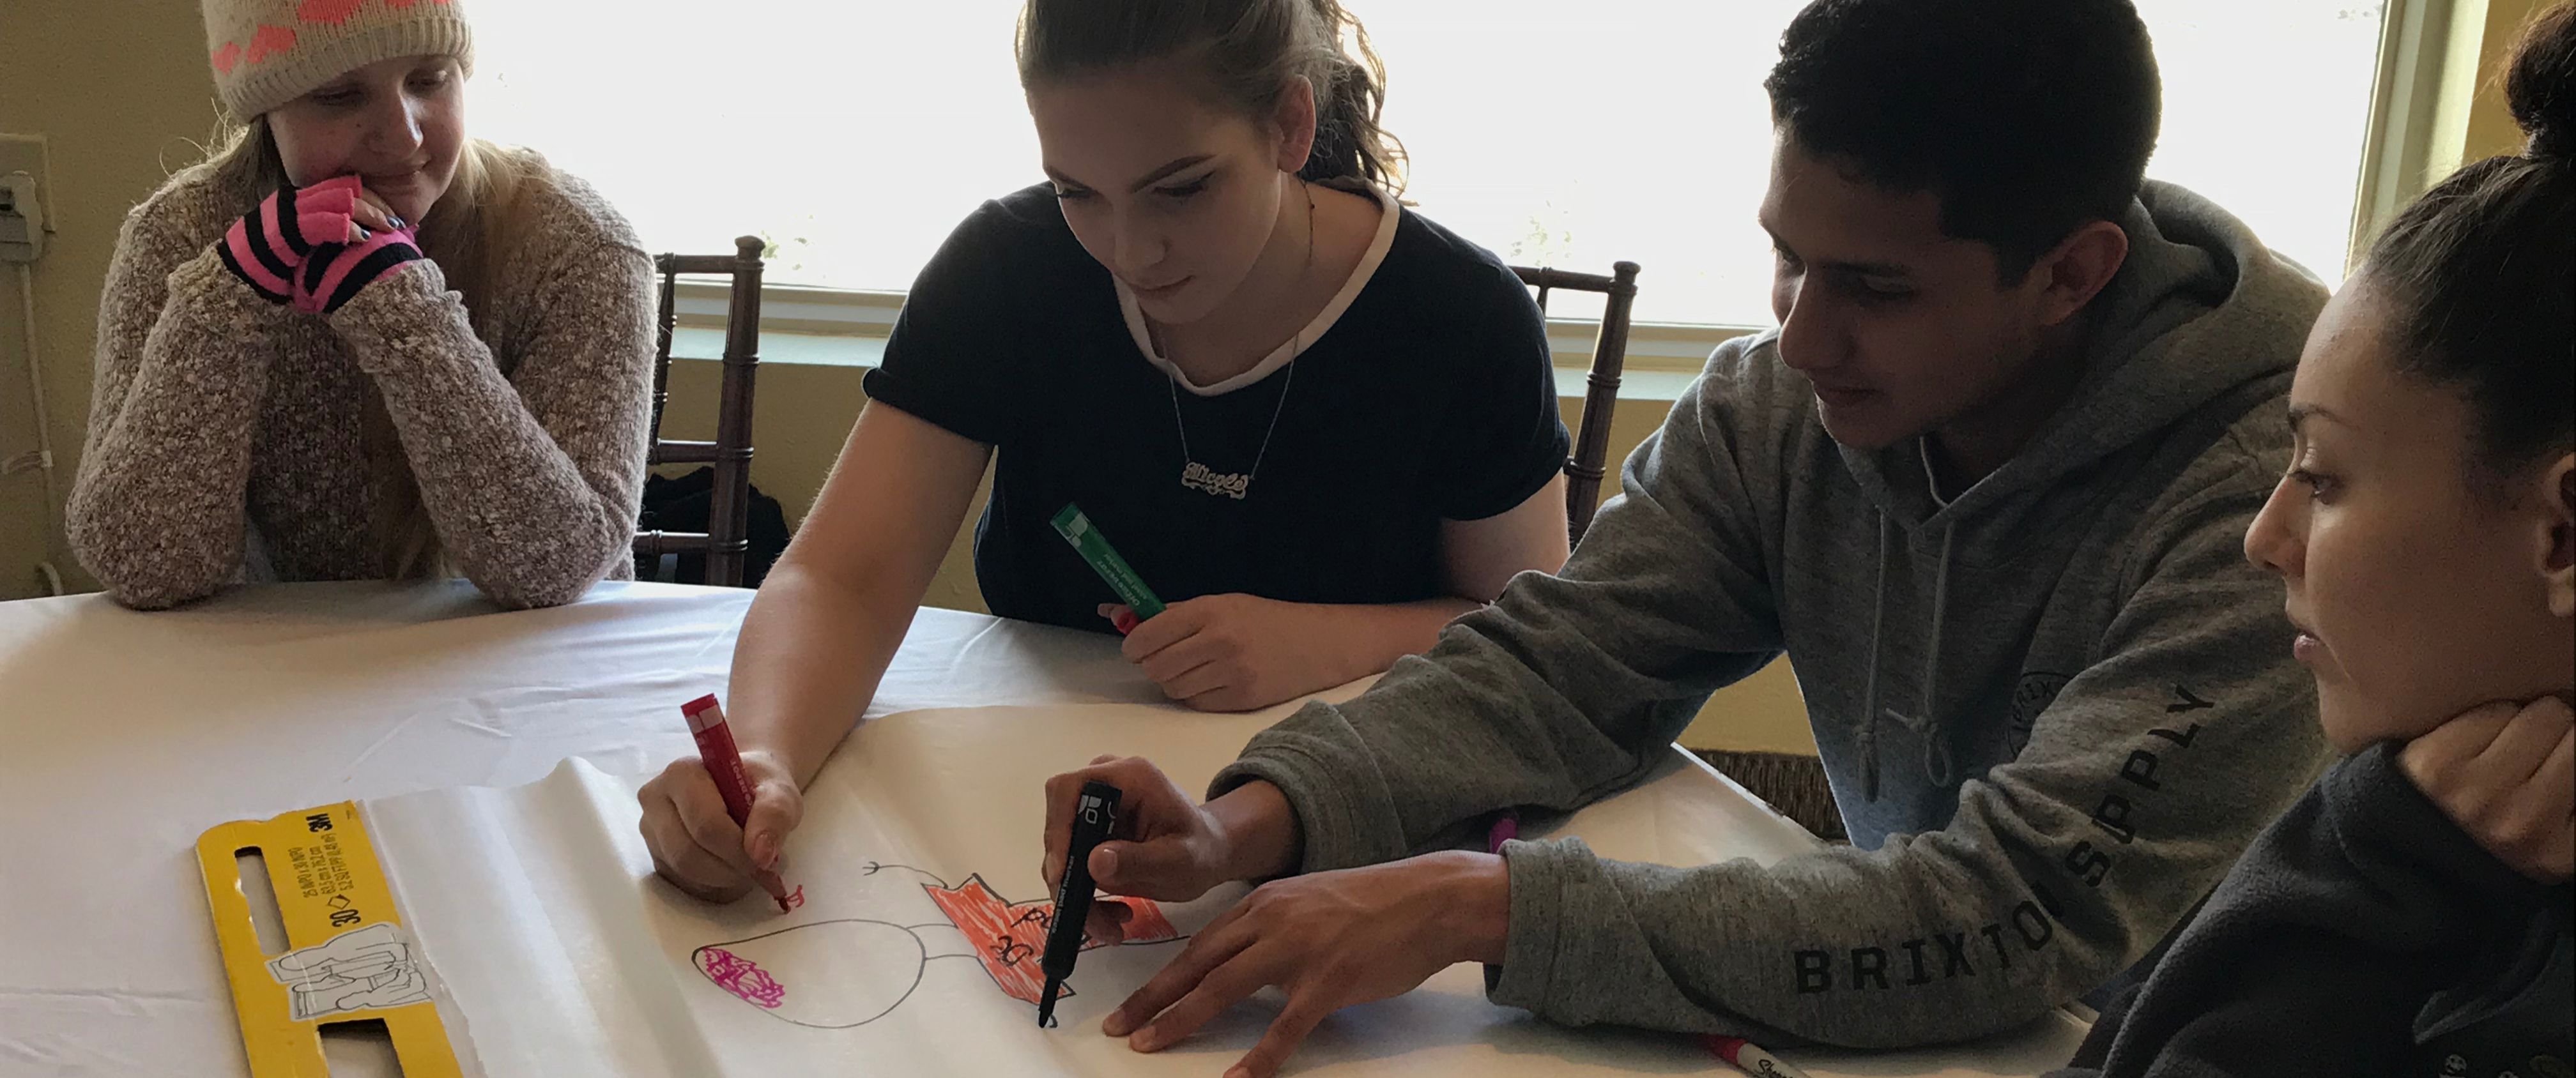 The Nevada Chapter's Teen Programs are designed to give young people the  skills, tools, and confidence they need to successfully transition to a  productive, ...